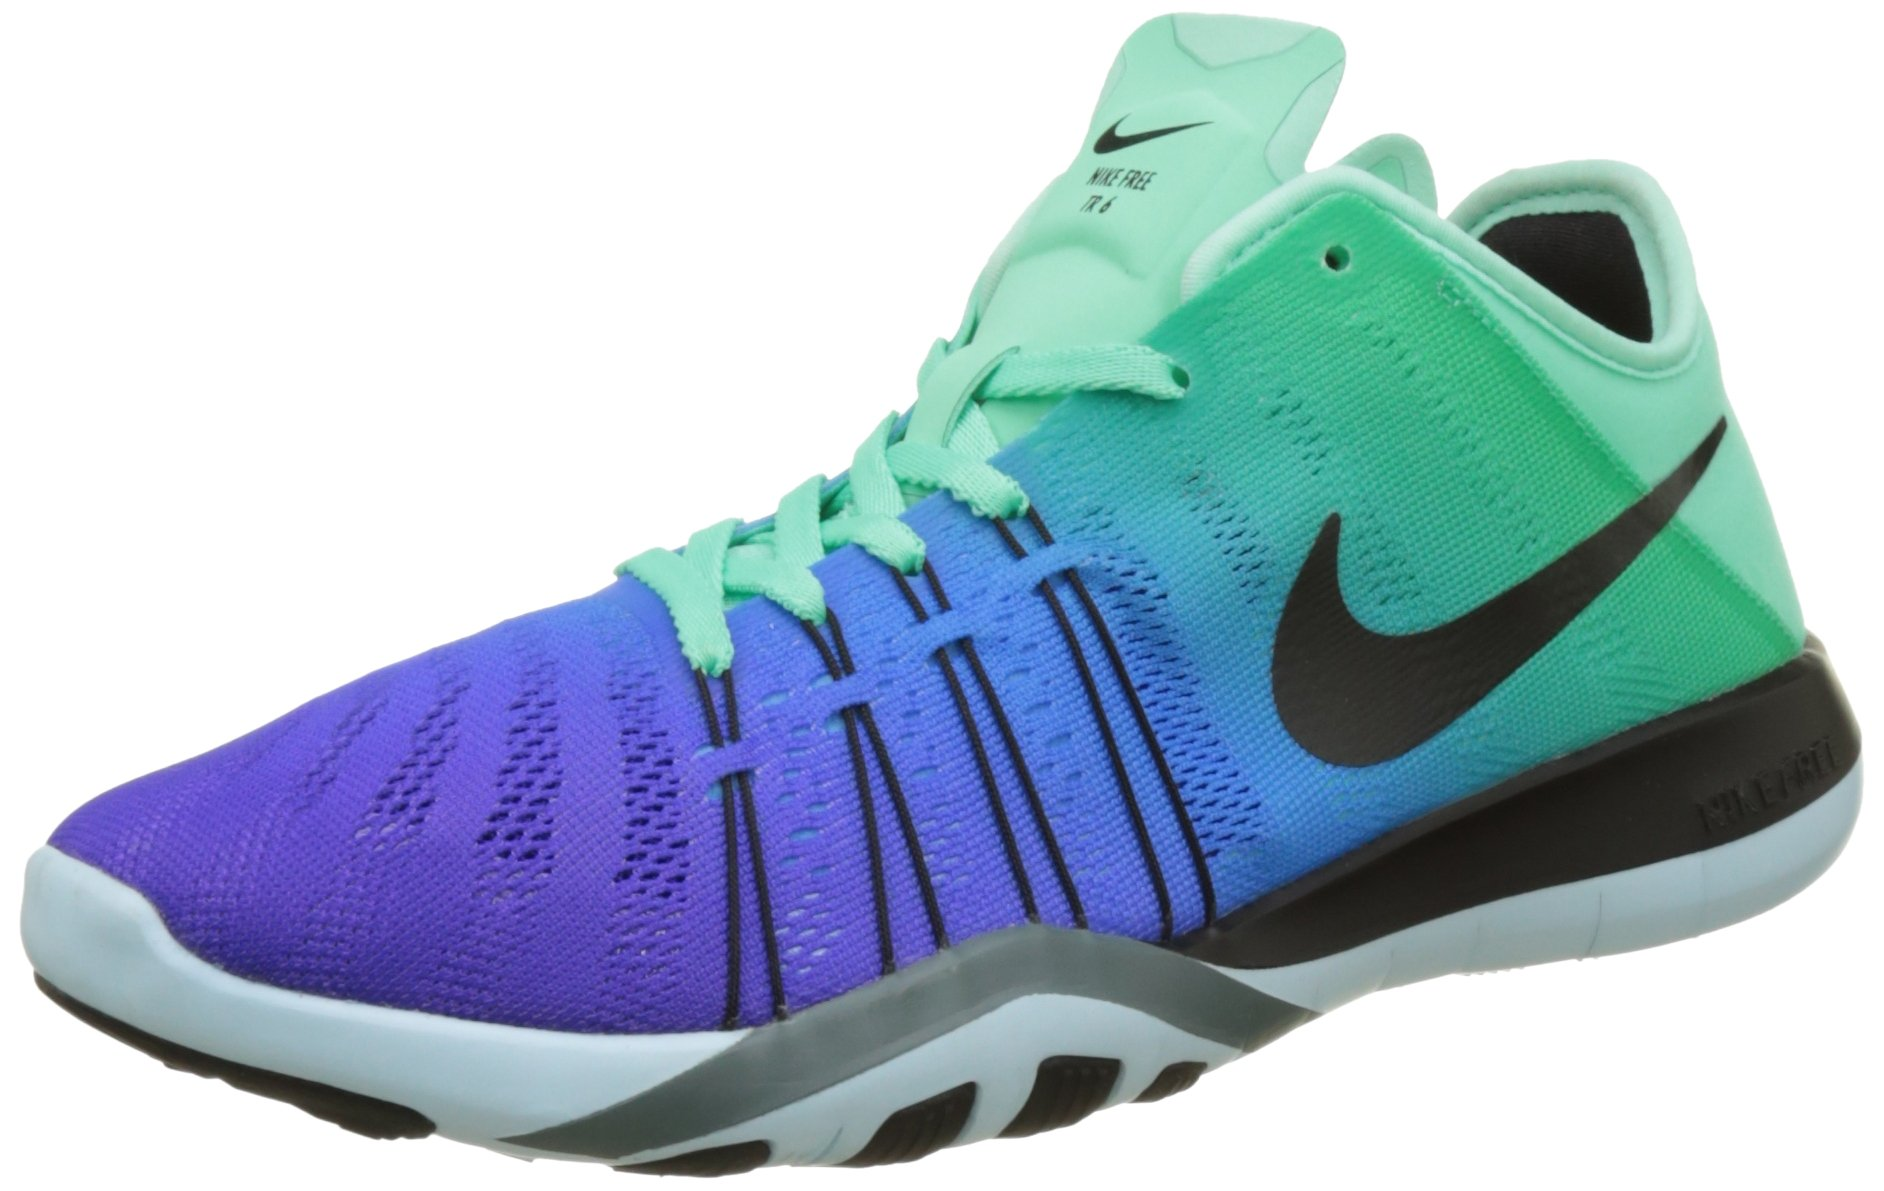 e5ff91f171d3 Galleon - Nike Women s Free TR 6 Spectrum Training Shoe Green Glow Black Glacier  Blue Hasta Size 6.5 M US